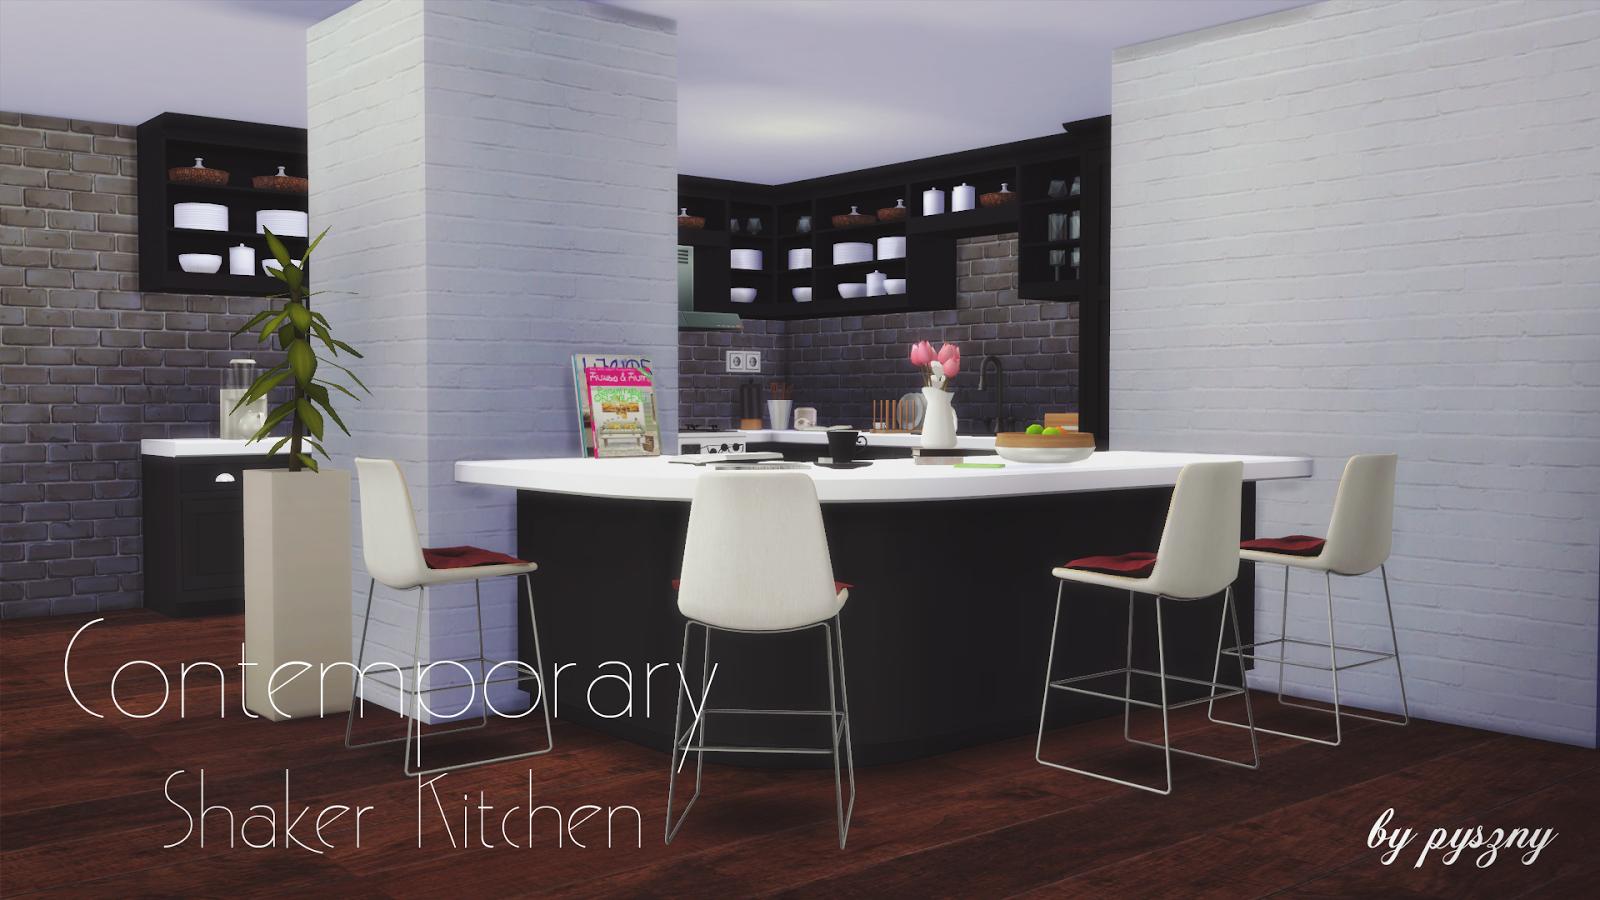 My sims 4 blog contemporary shaker kitchen set by pyszny for Kitchen ideas sims 4